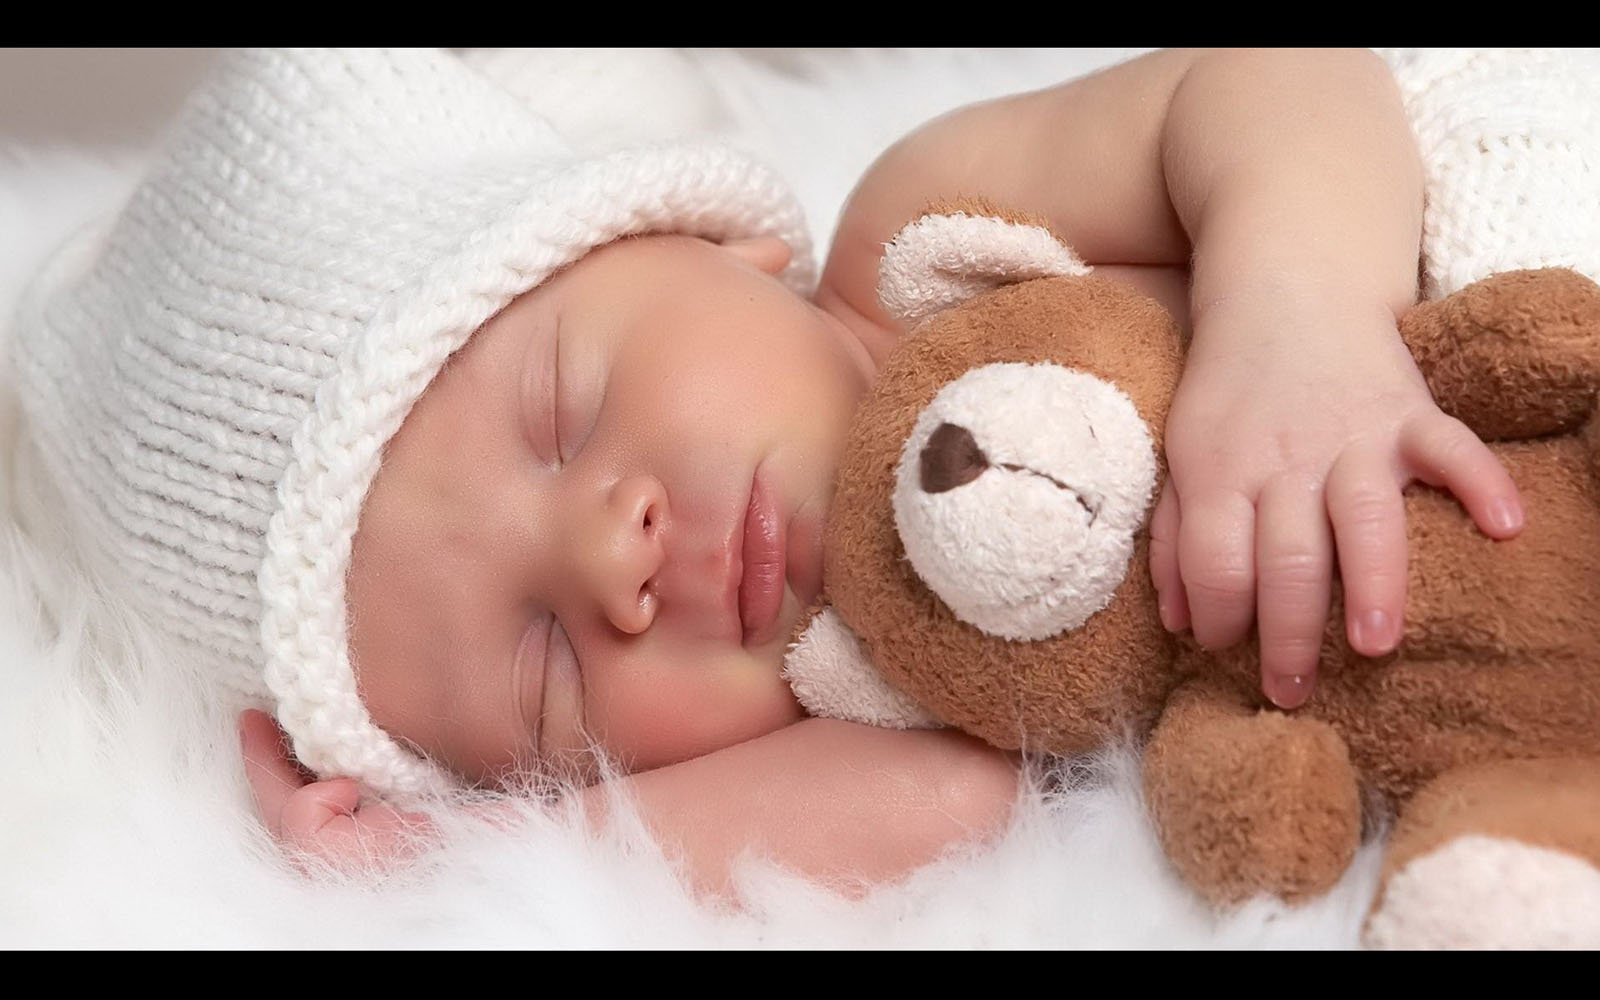 Cute Babies Hd Wallpapers Desktop Wallpapers Online 1600x1000